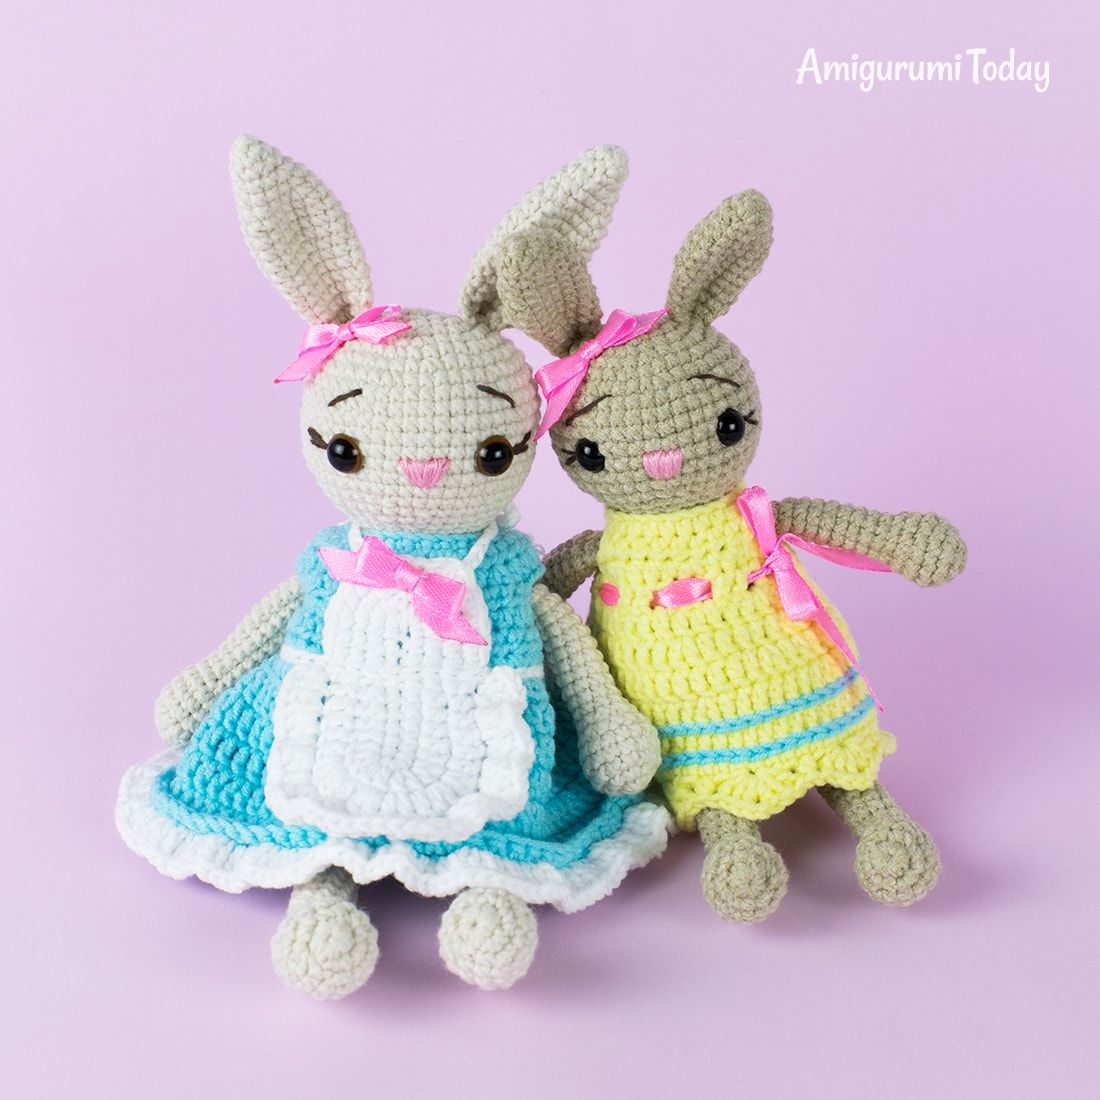 Amigurumi bunny with Easter egg (With images) | Free crochet ... | 1100x1100